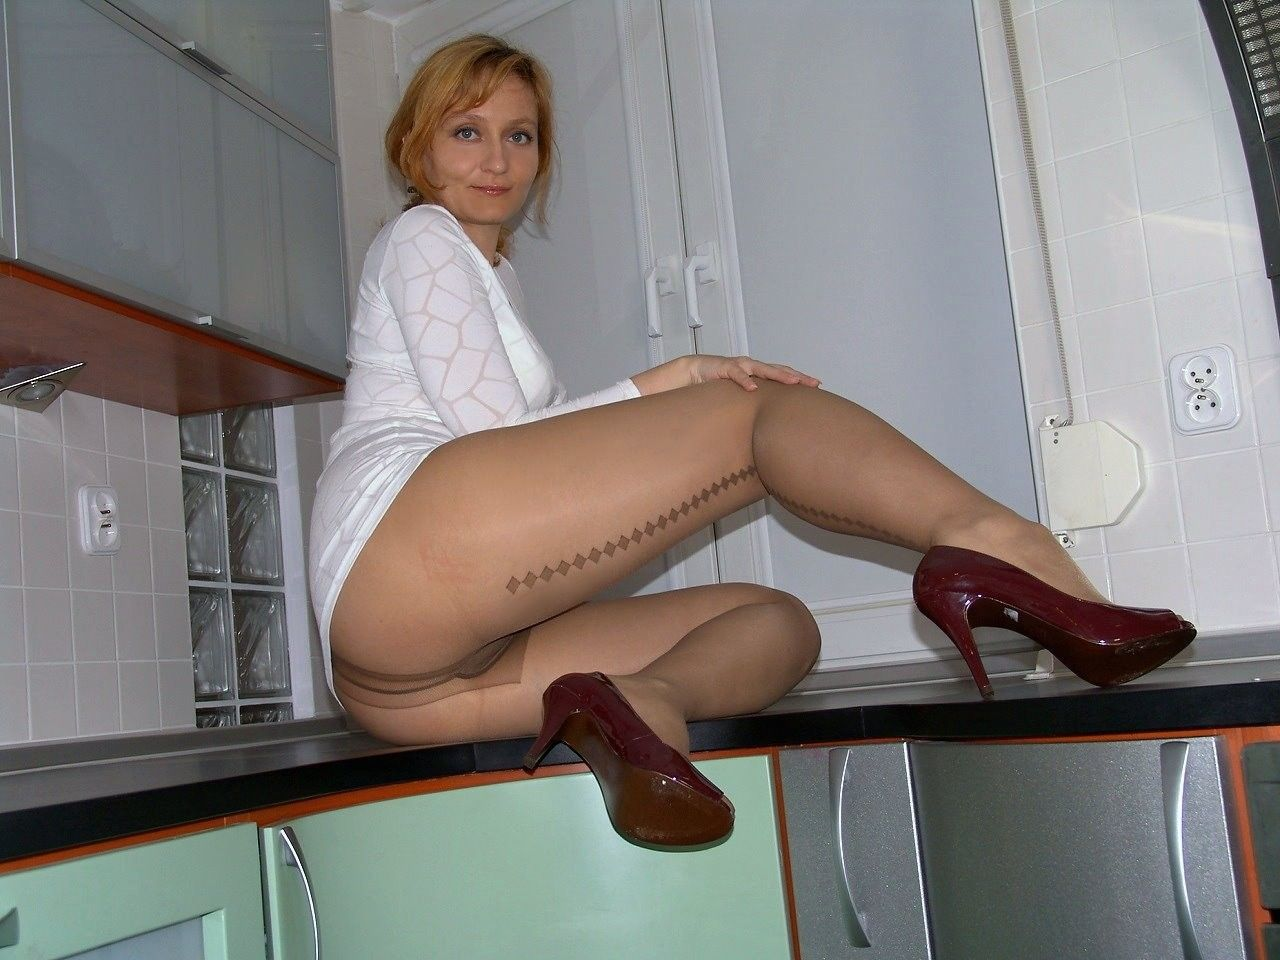 mature pantyhose 1000+ images about pantyhose legs on Pinterest | Sexy, Pantyhose legs and  Sexy hot